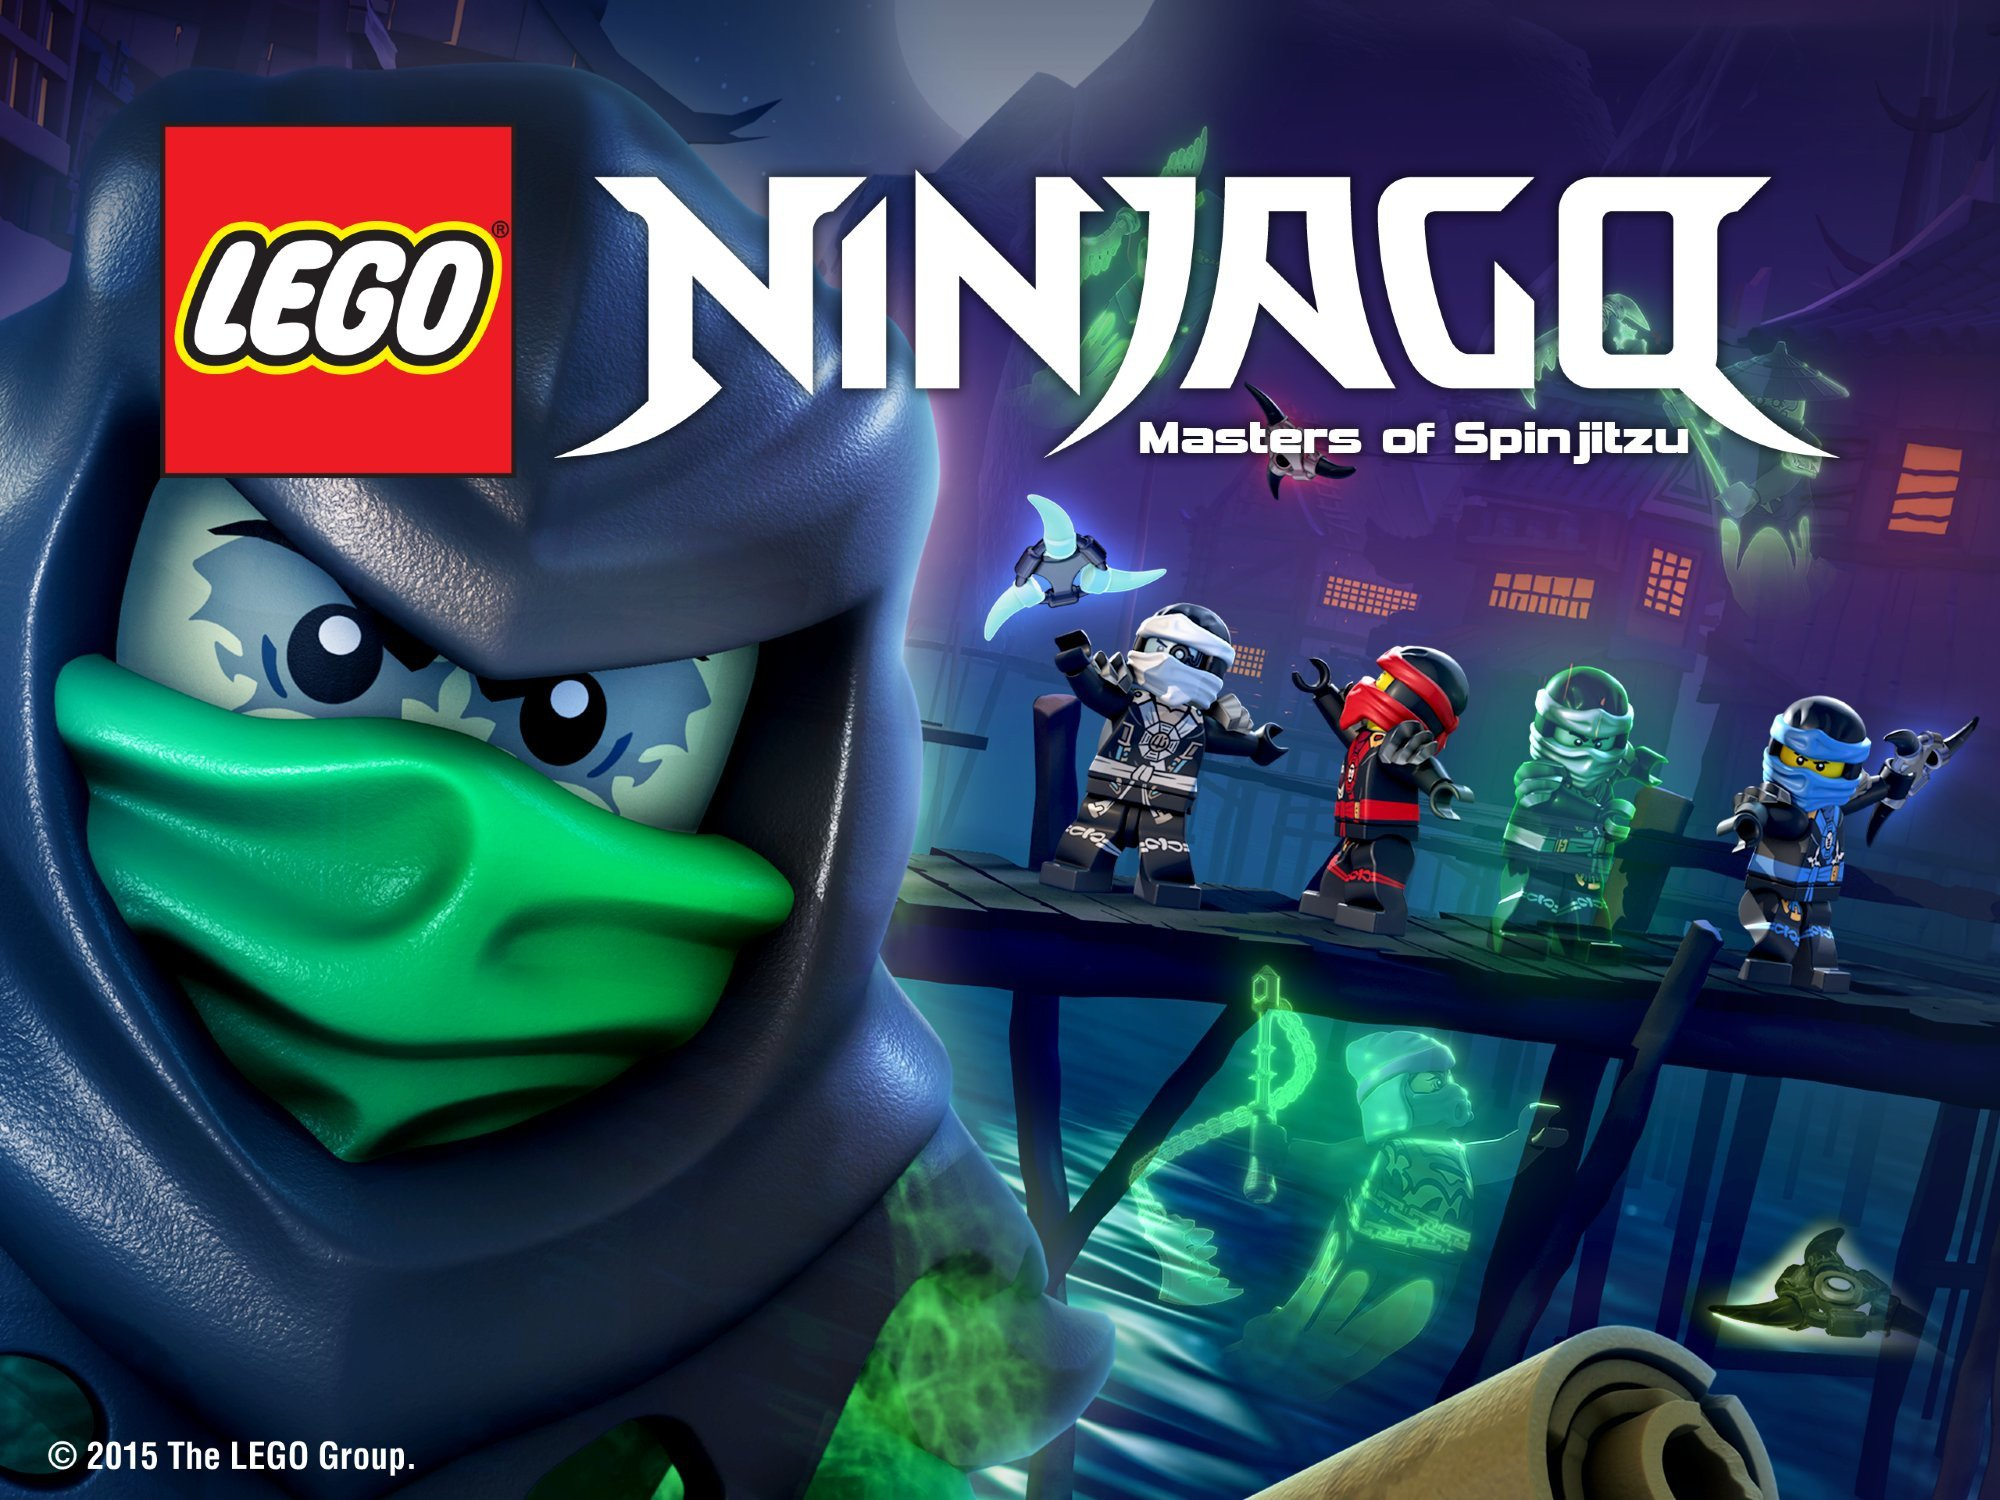 LEGO Ninjago: Masters of Spinjitzu on Amazon Prime Video UK